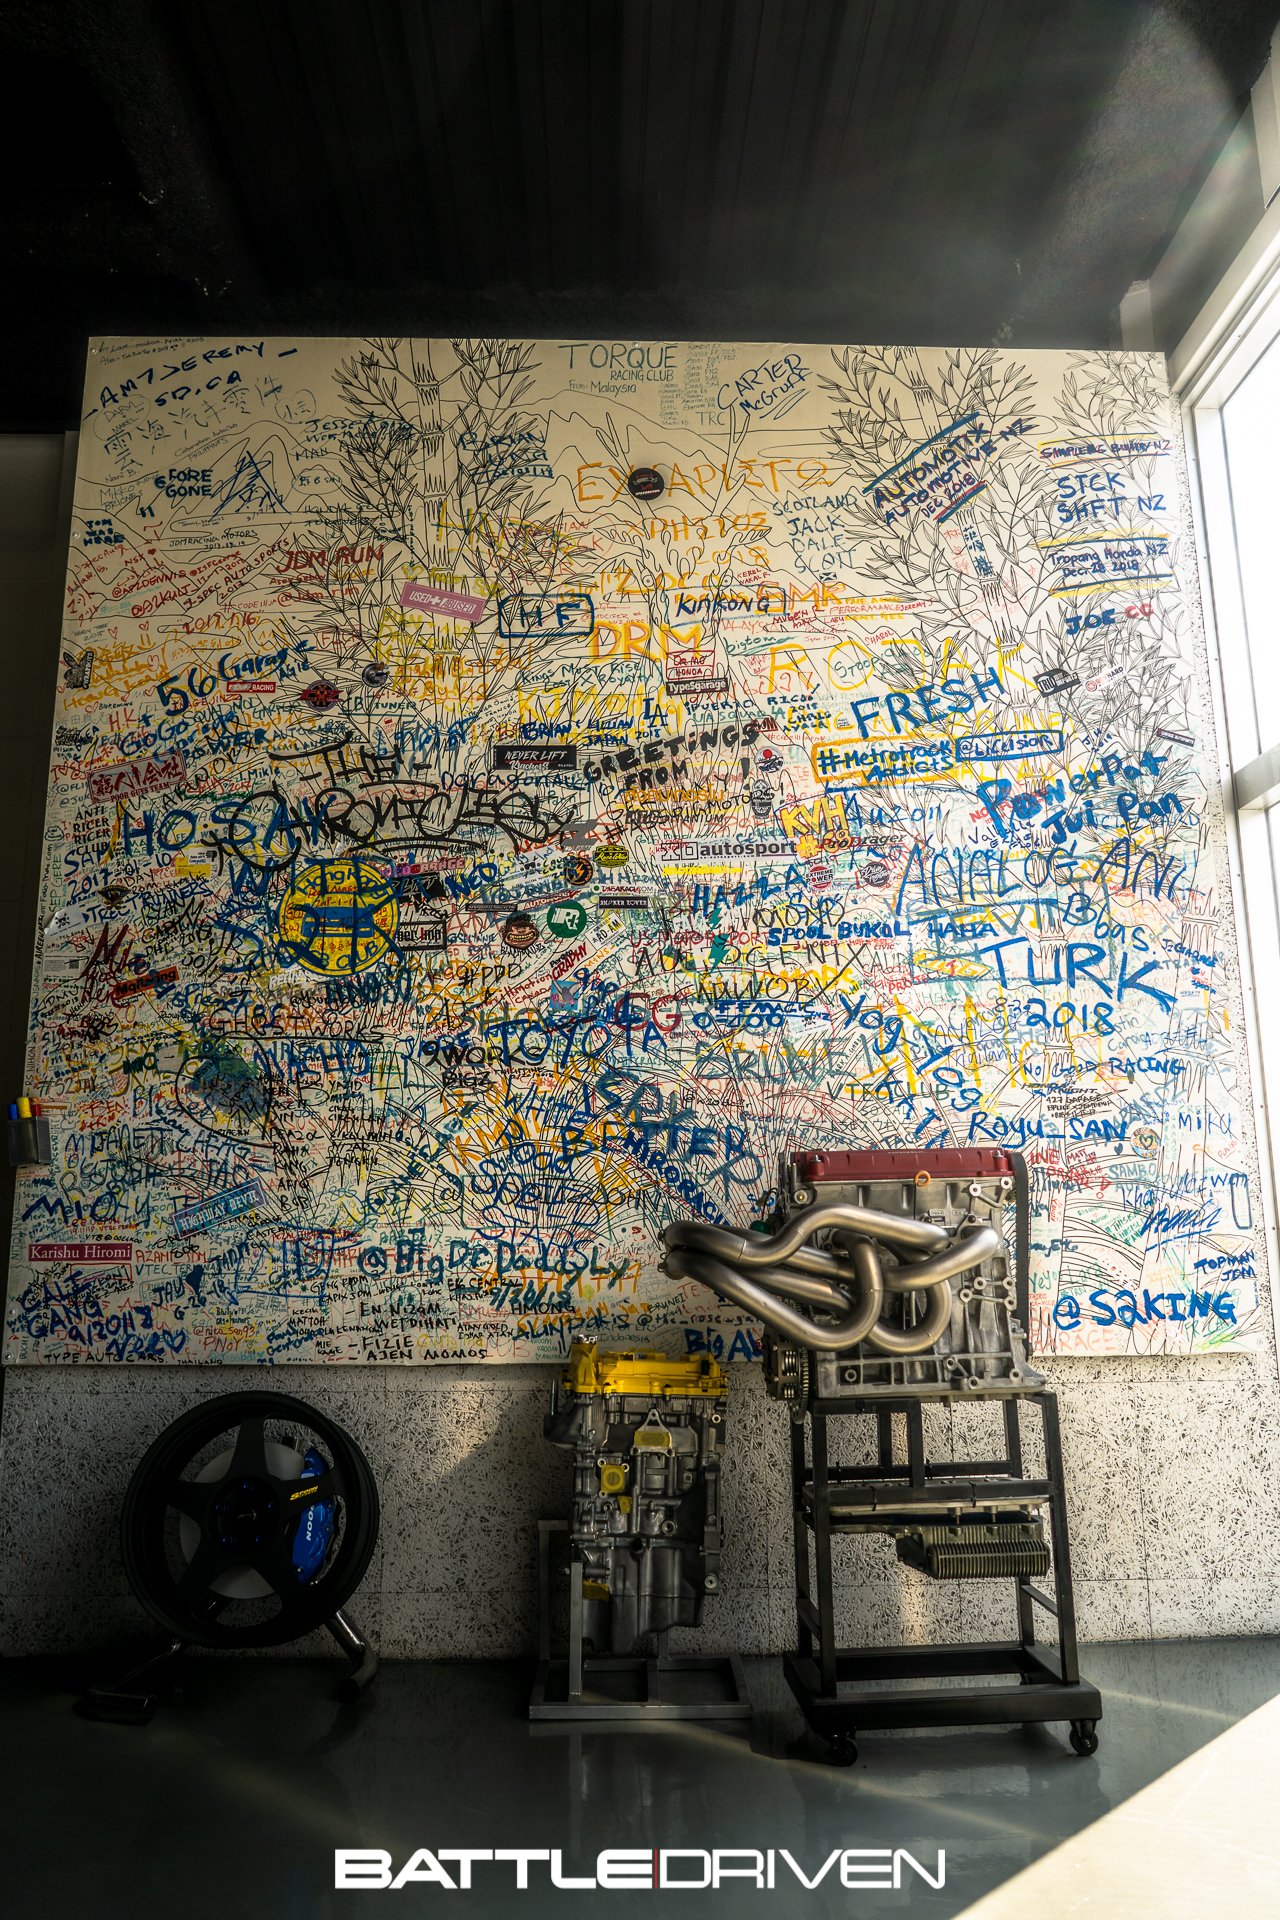 The famed wall that i begrudgingly forgot to sign. Like i said earlier though, I'll be back.